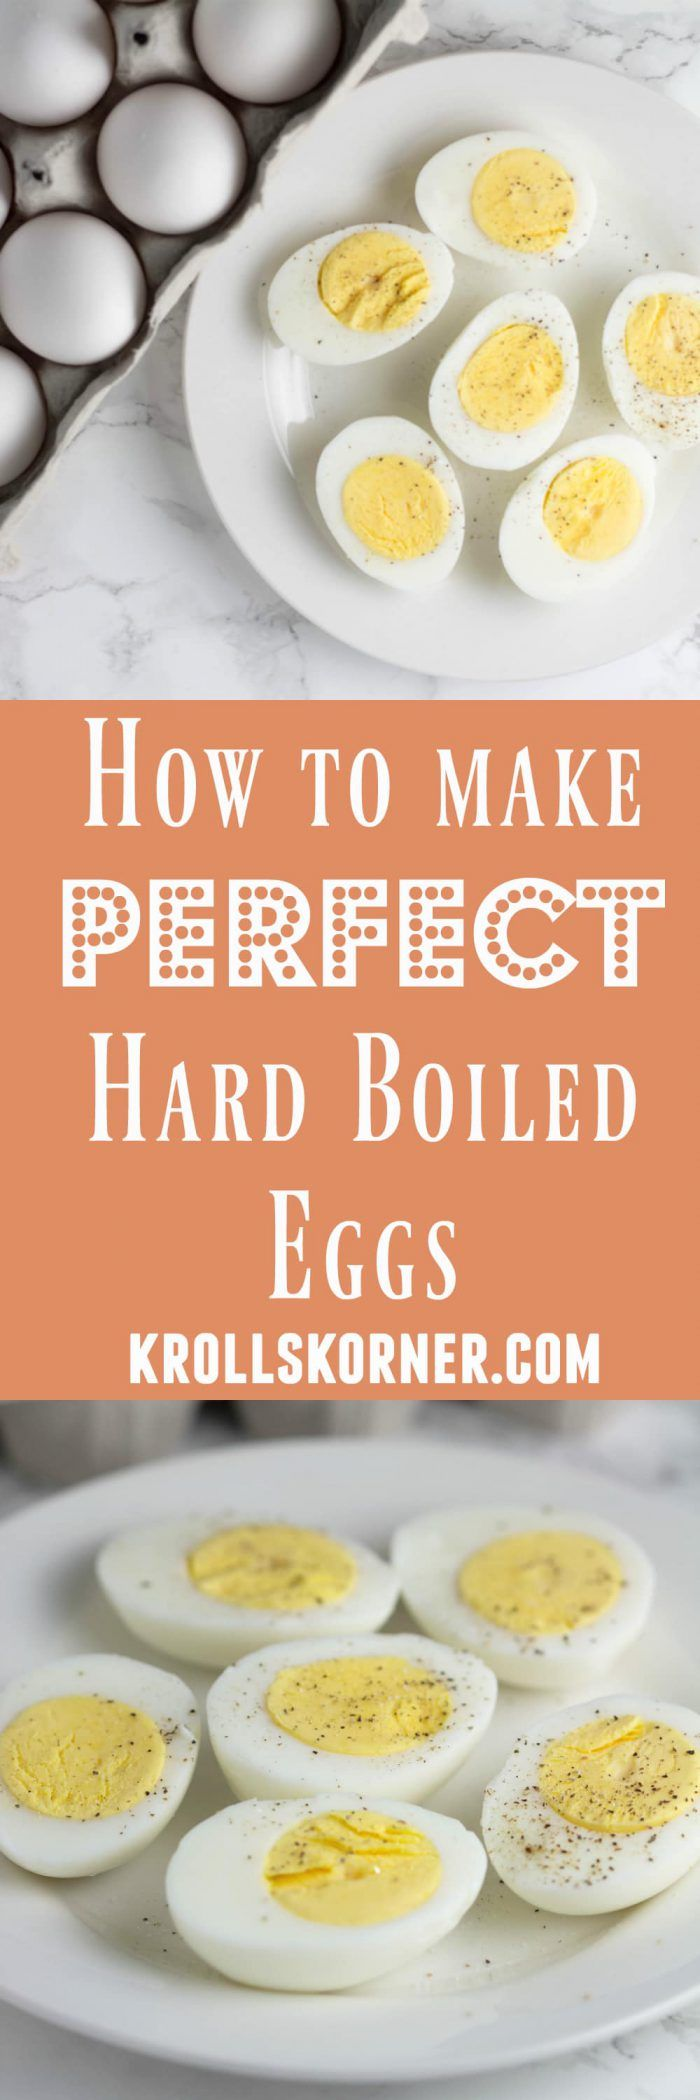 How to Make Perfect Hard Boiled Eggs Every Time